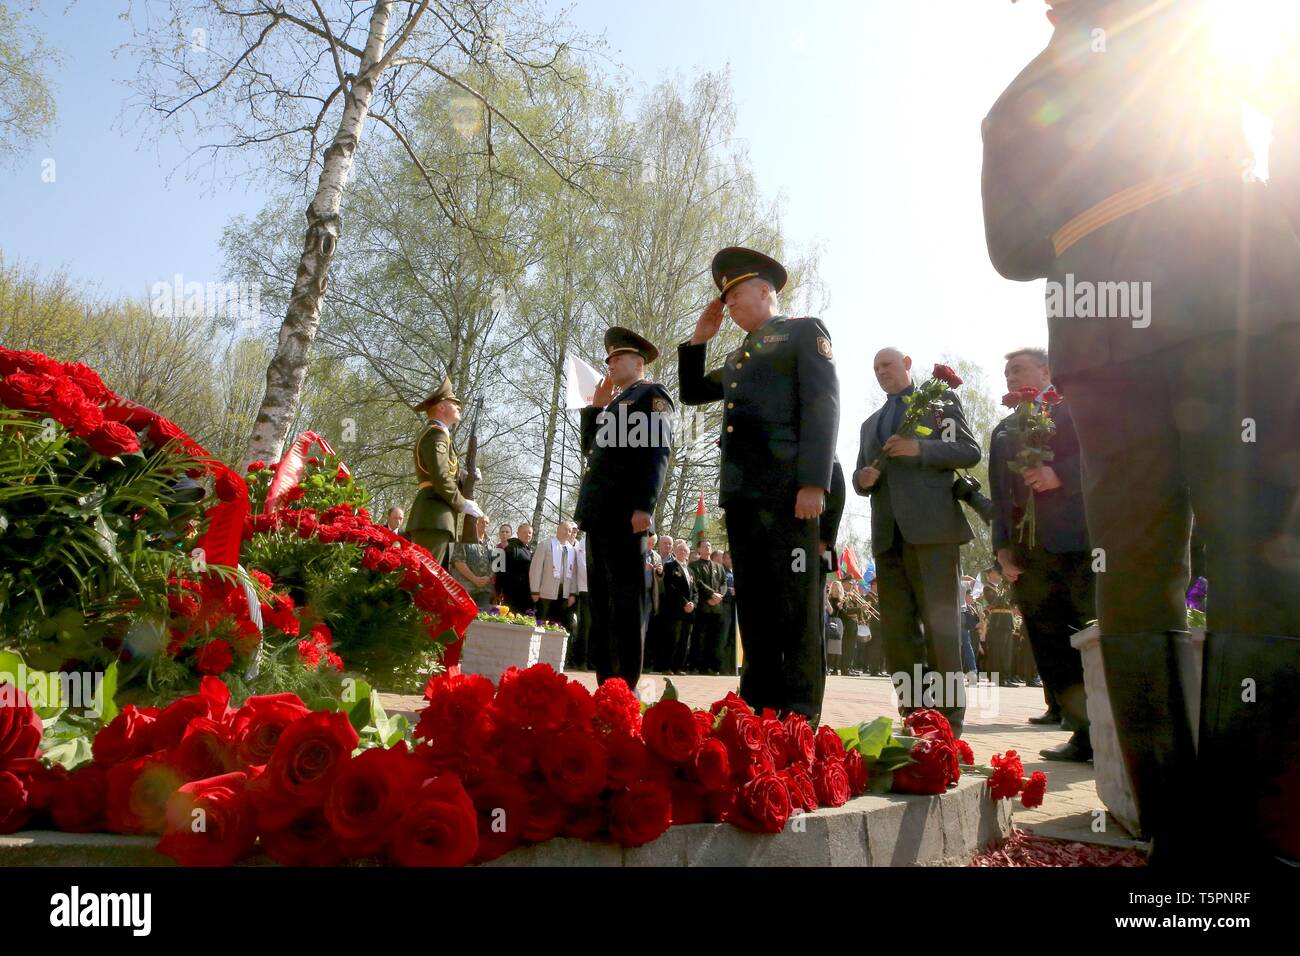 Minsk, Belarus. 26th Apr, 2019. Soldiers salute in a ceremony to commemorate the victims of the Chernobyl disaster in Minsk, Belarus, April 26, 2019. The Chernobyl nuclear power plant, some 110 km north of the Ukrainian capital Kiev, witnessed one of the worst nuclear accidents in human history on April 26, 1986, when a series of explosions ripped through the No.4 reactor, spreading radiation across Ukraine, Belarus, Russia and other European countries. Credit: Efim Mazurevich/Xinhua/Alamy Live News - Stock Image